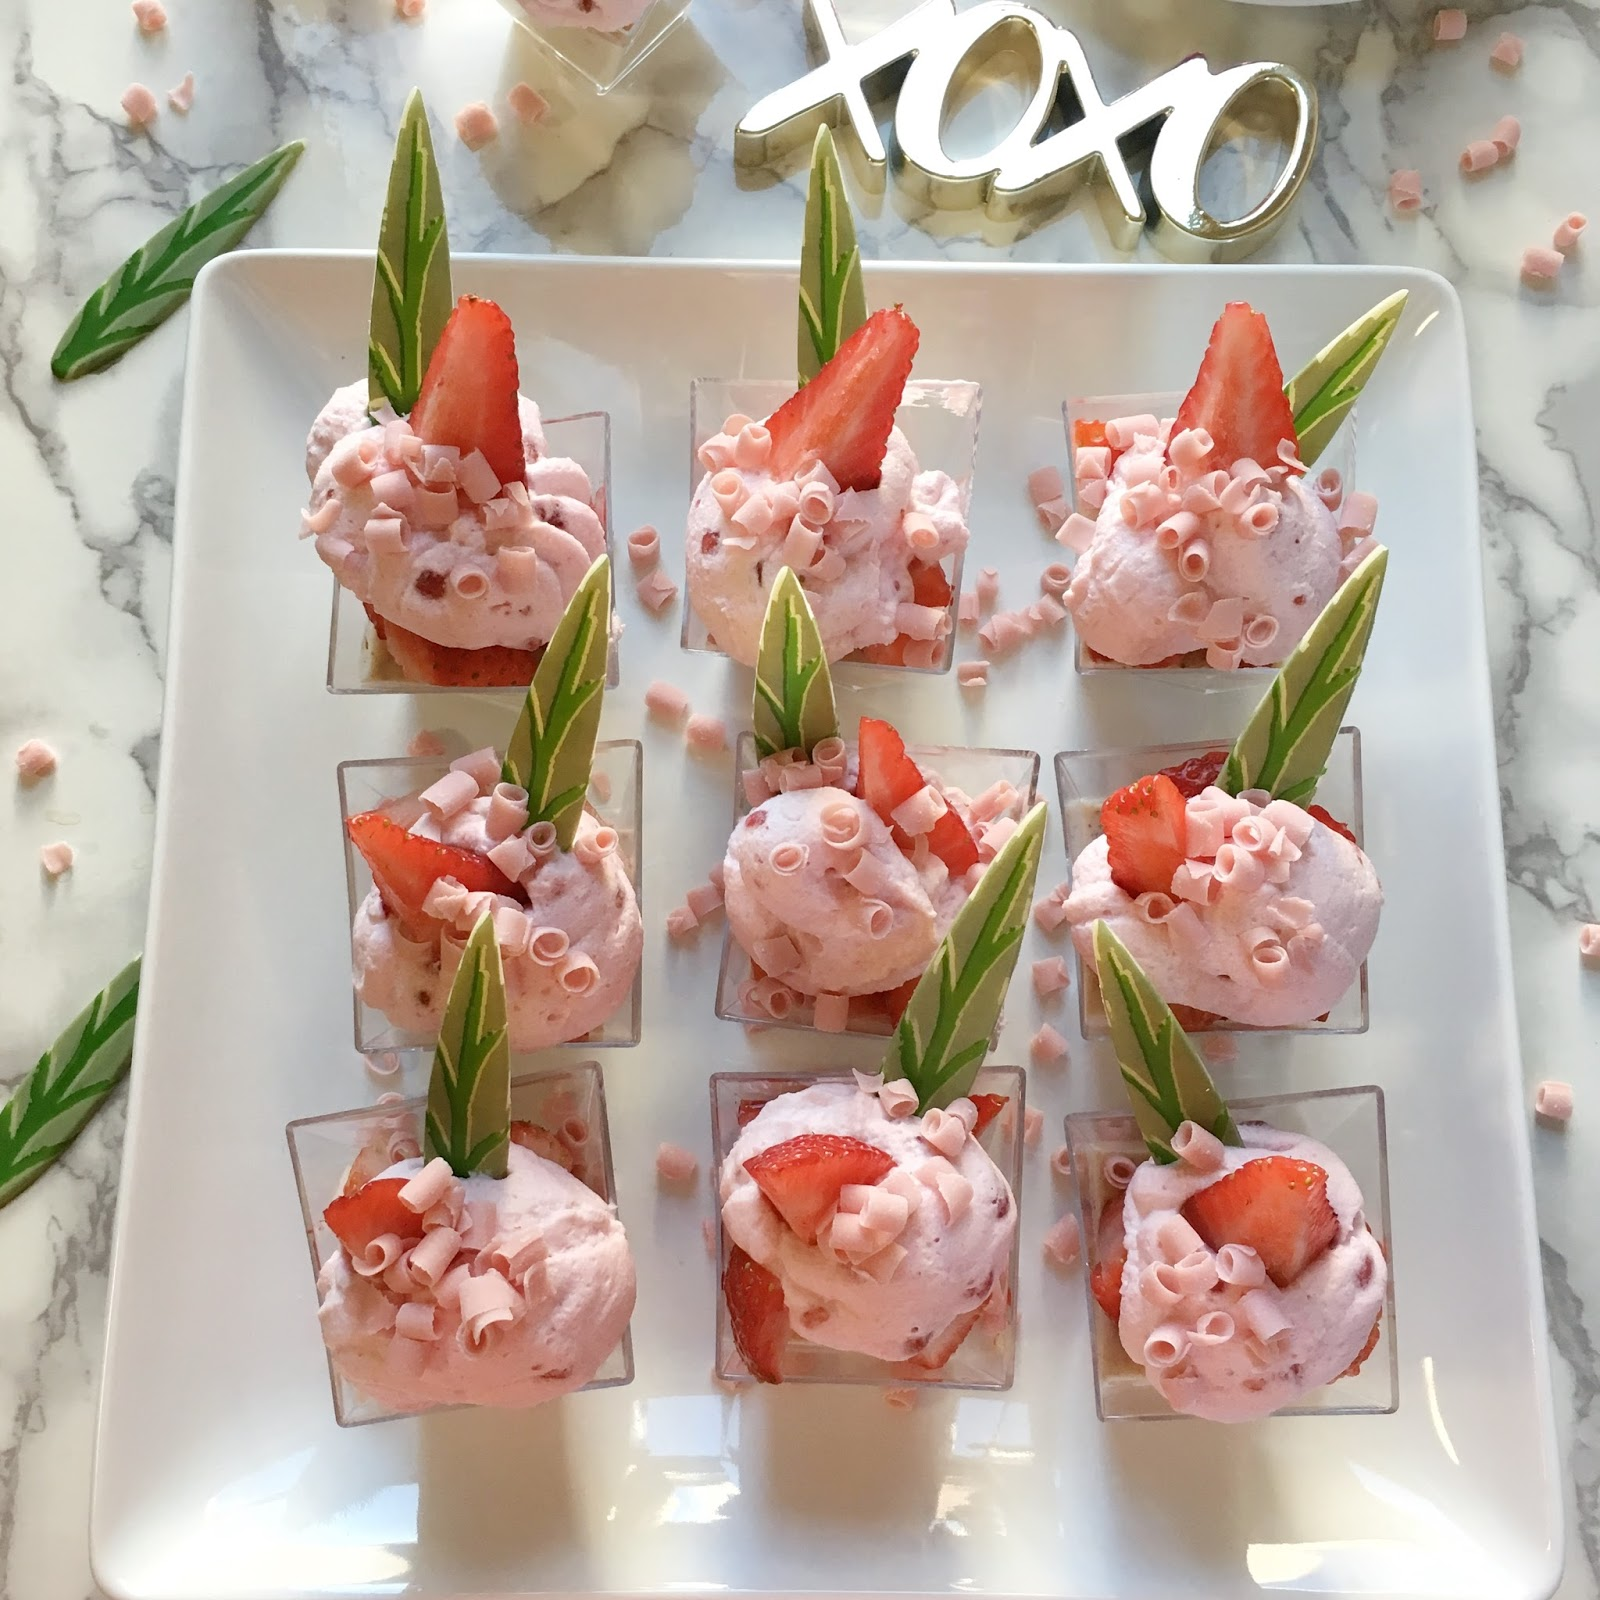 Gold-Leaf-Gourmet-Strawberries-and-Cream-Verrines-Recipe